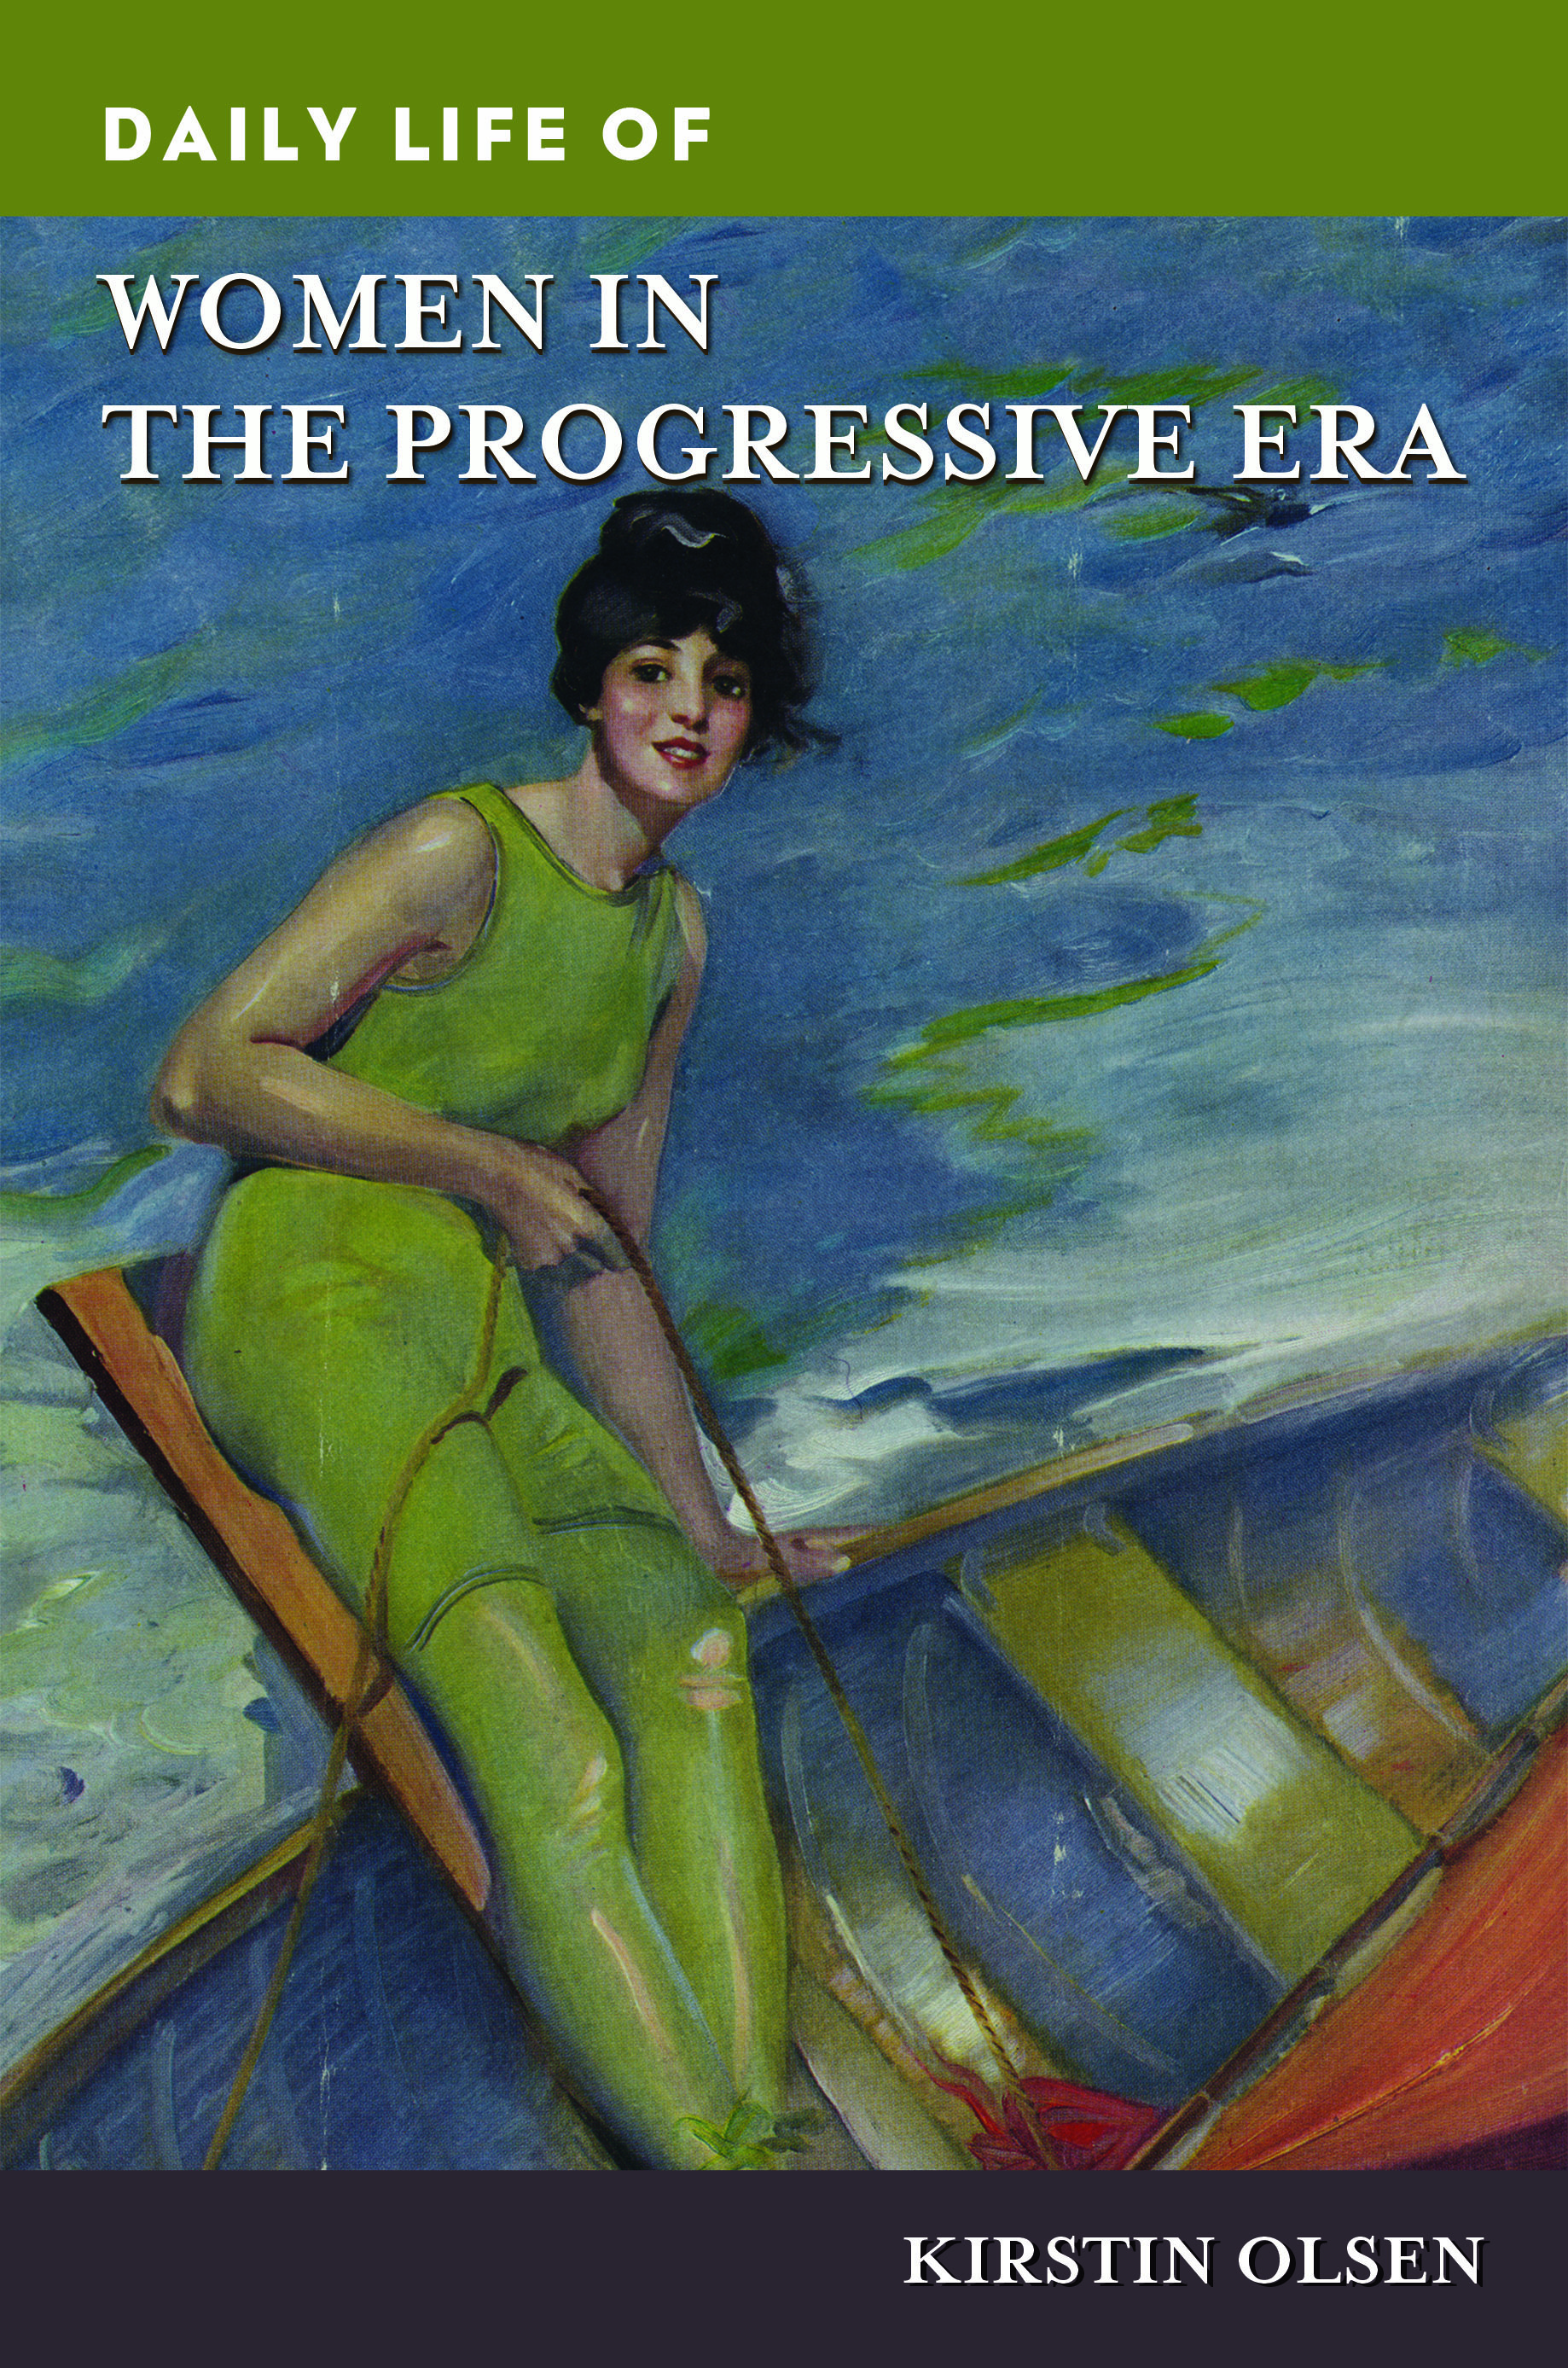 Daily Life of Women in the Progressive Era cover image